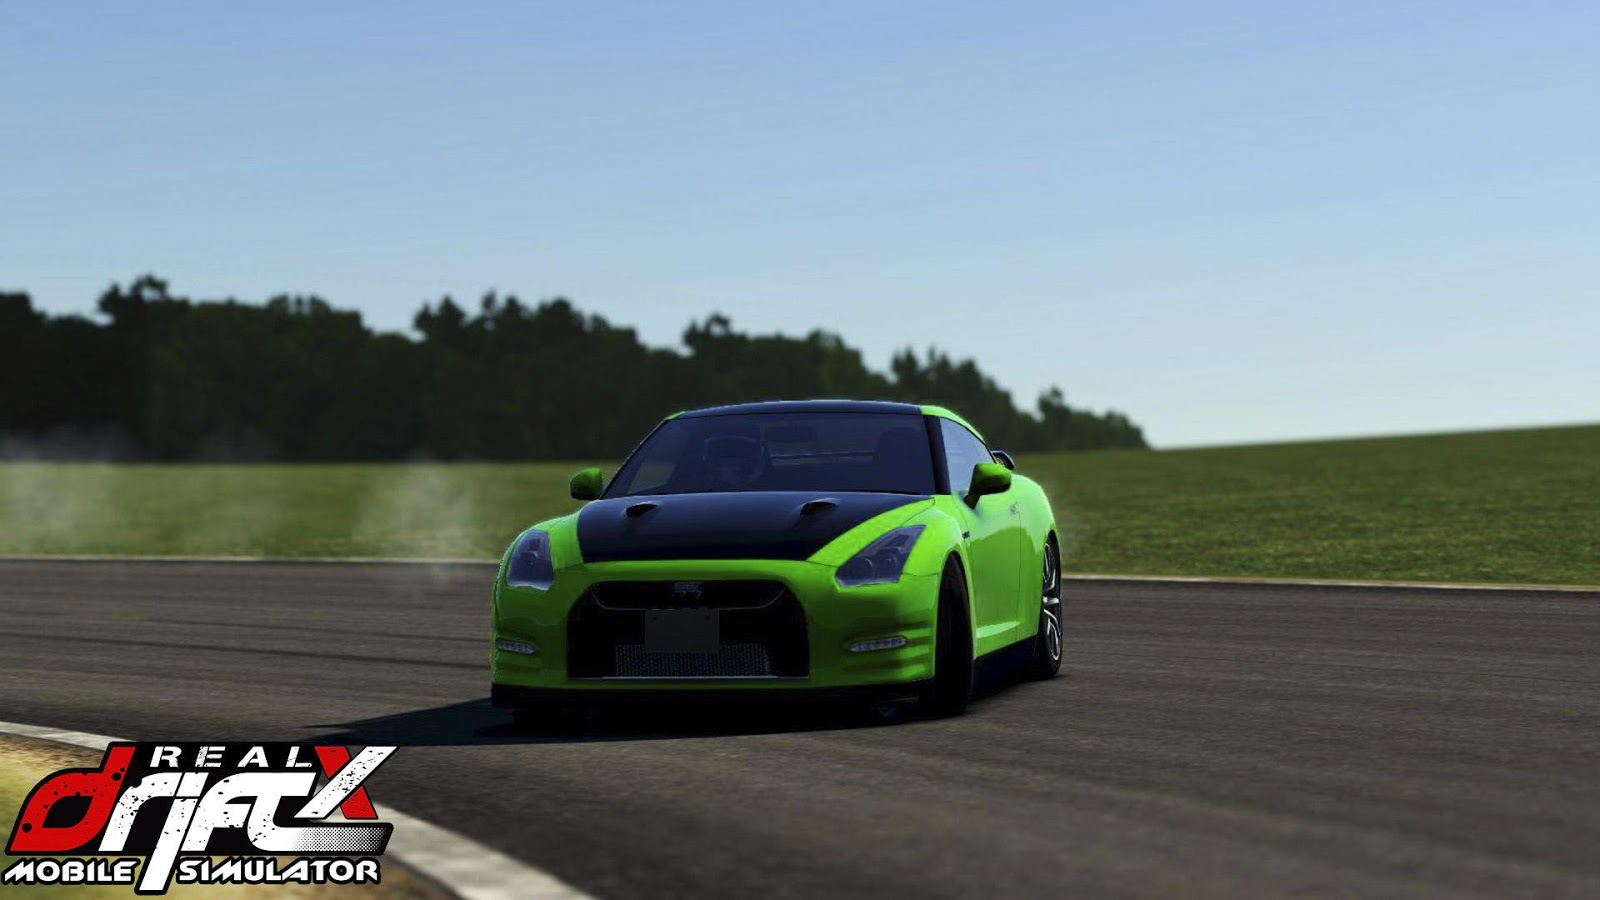 Real Drift X Car Racing Screenshot 0